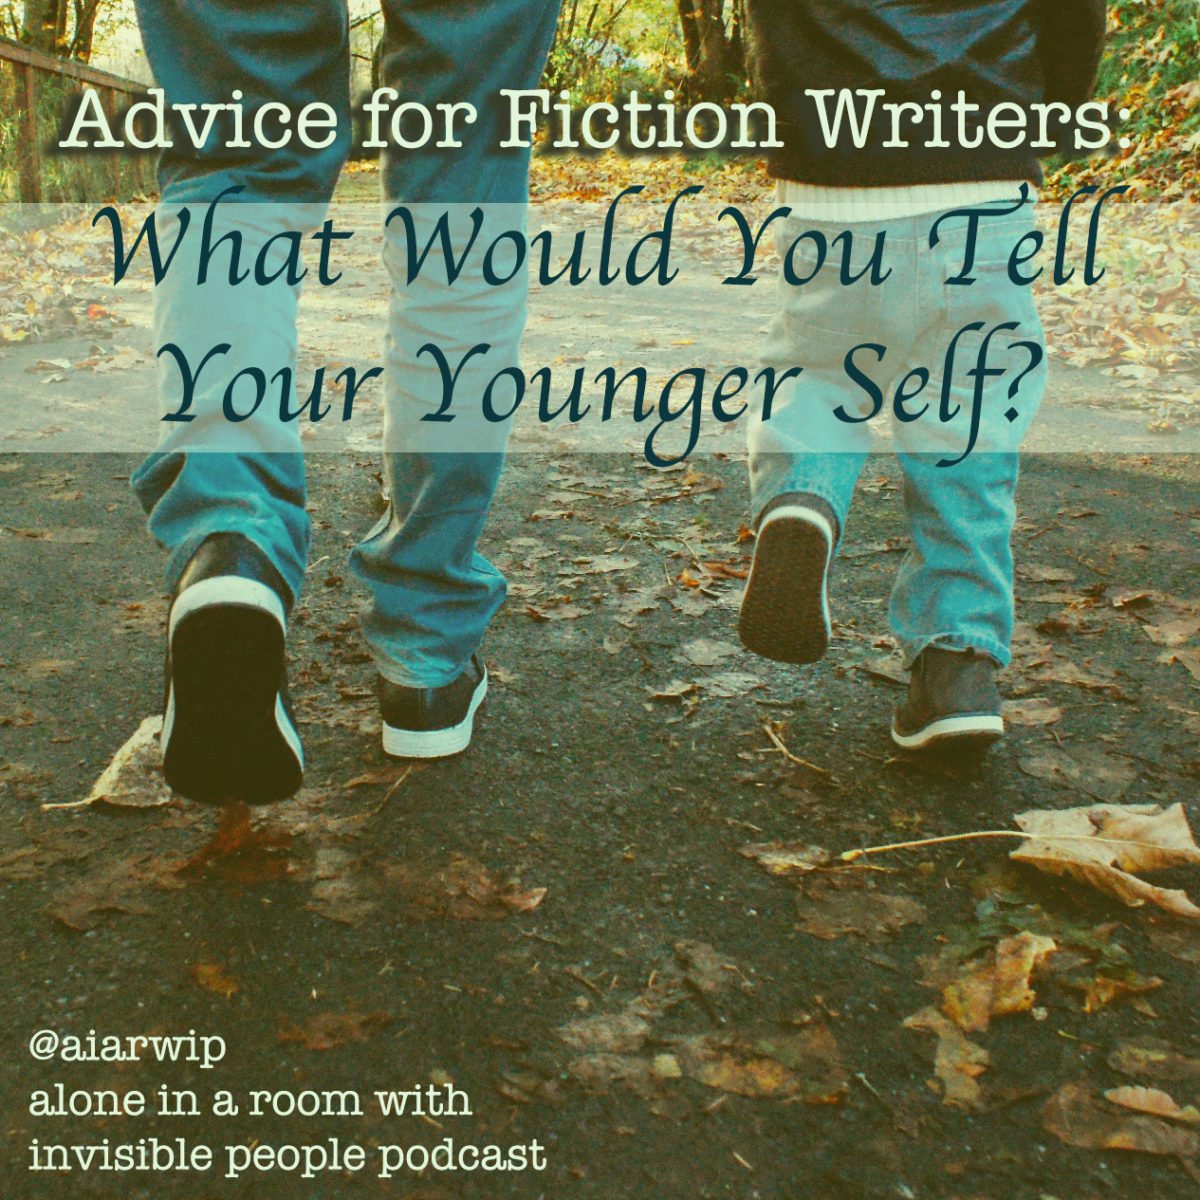 Episode 67: Advice for Fiction Writers: What Would You Tell Your Younger Self?